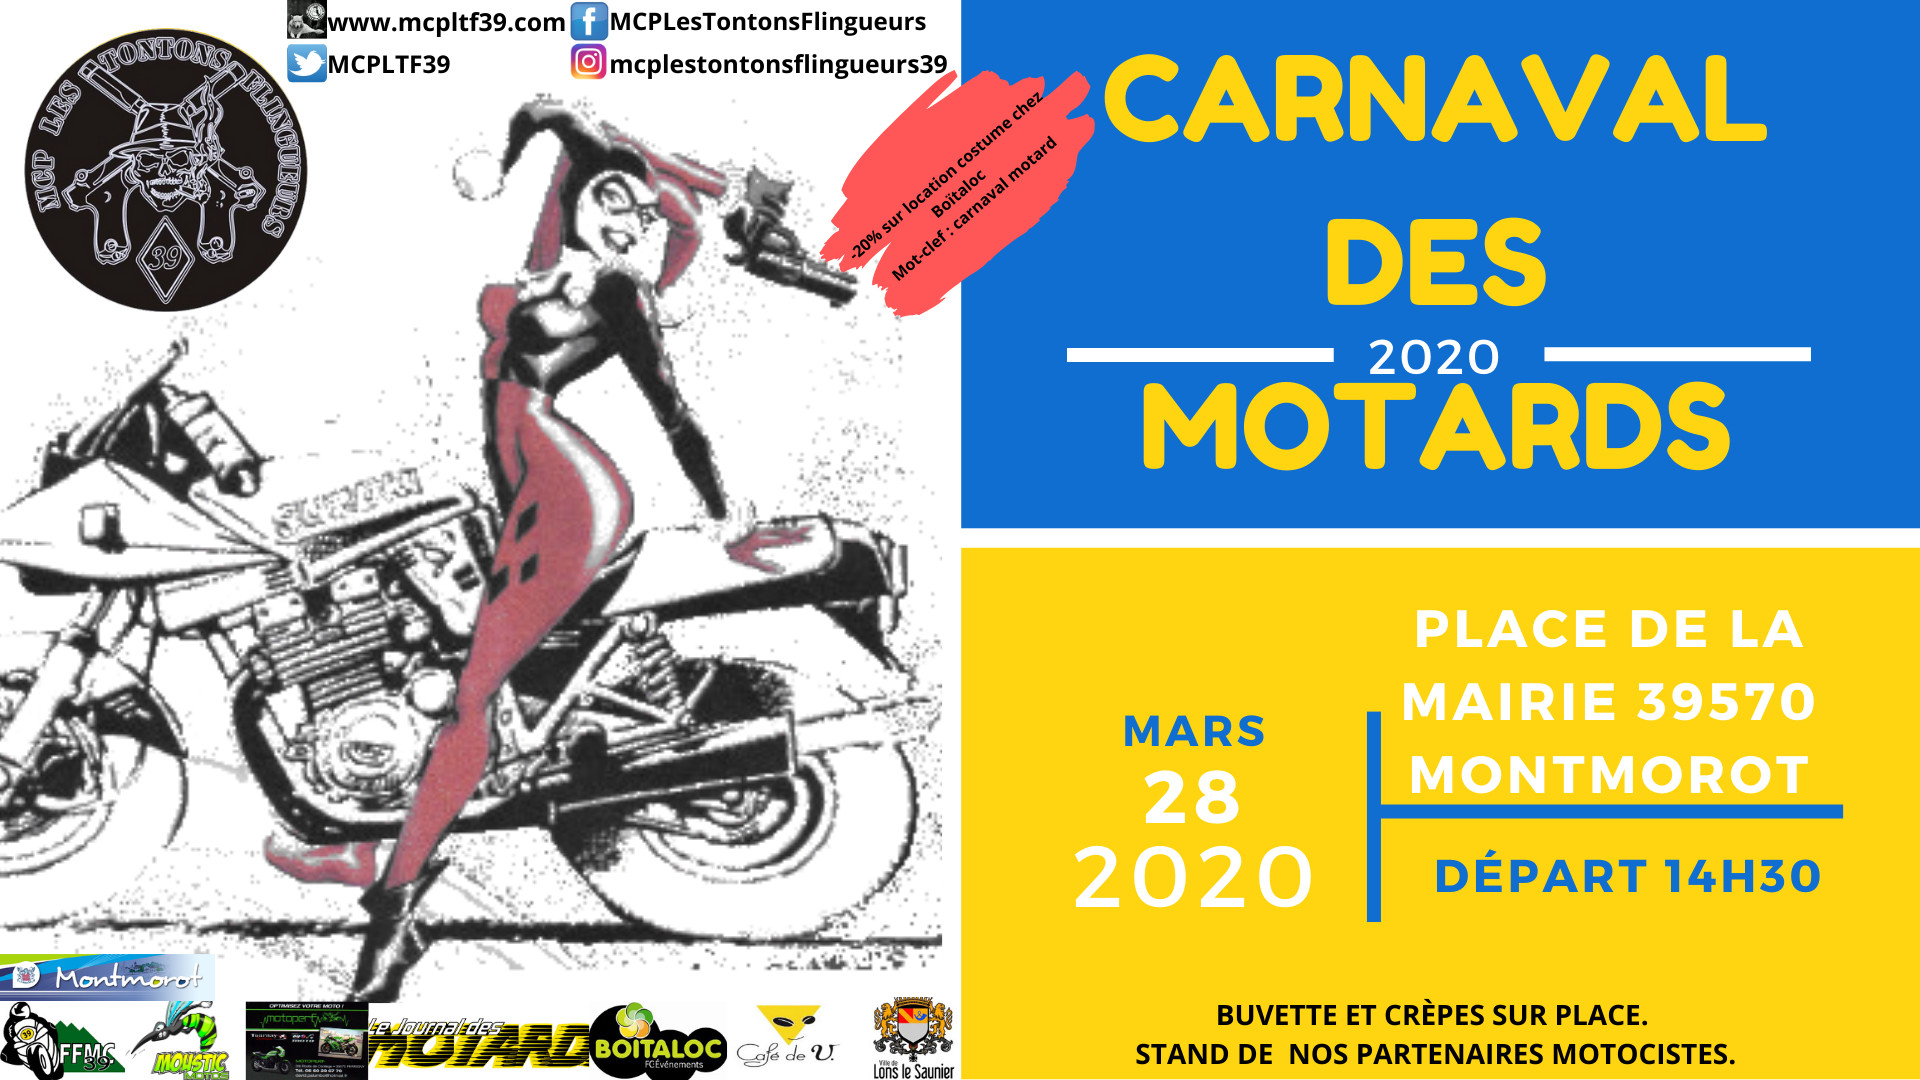 Carnaval des Motards 2020